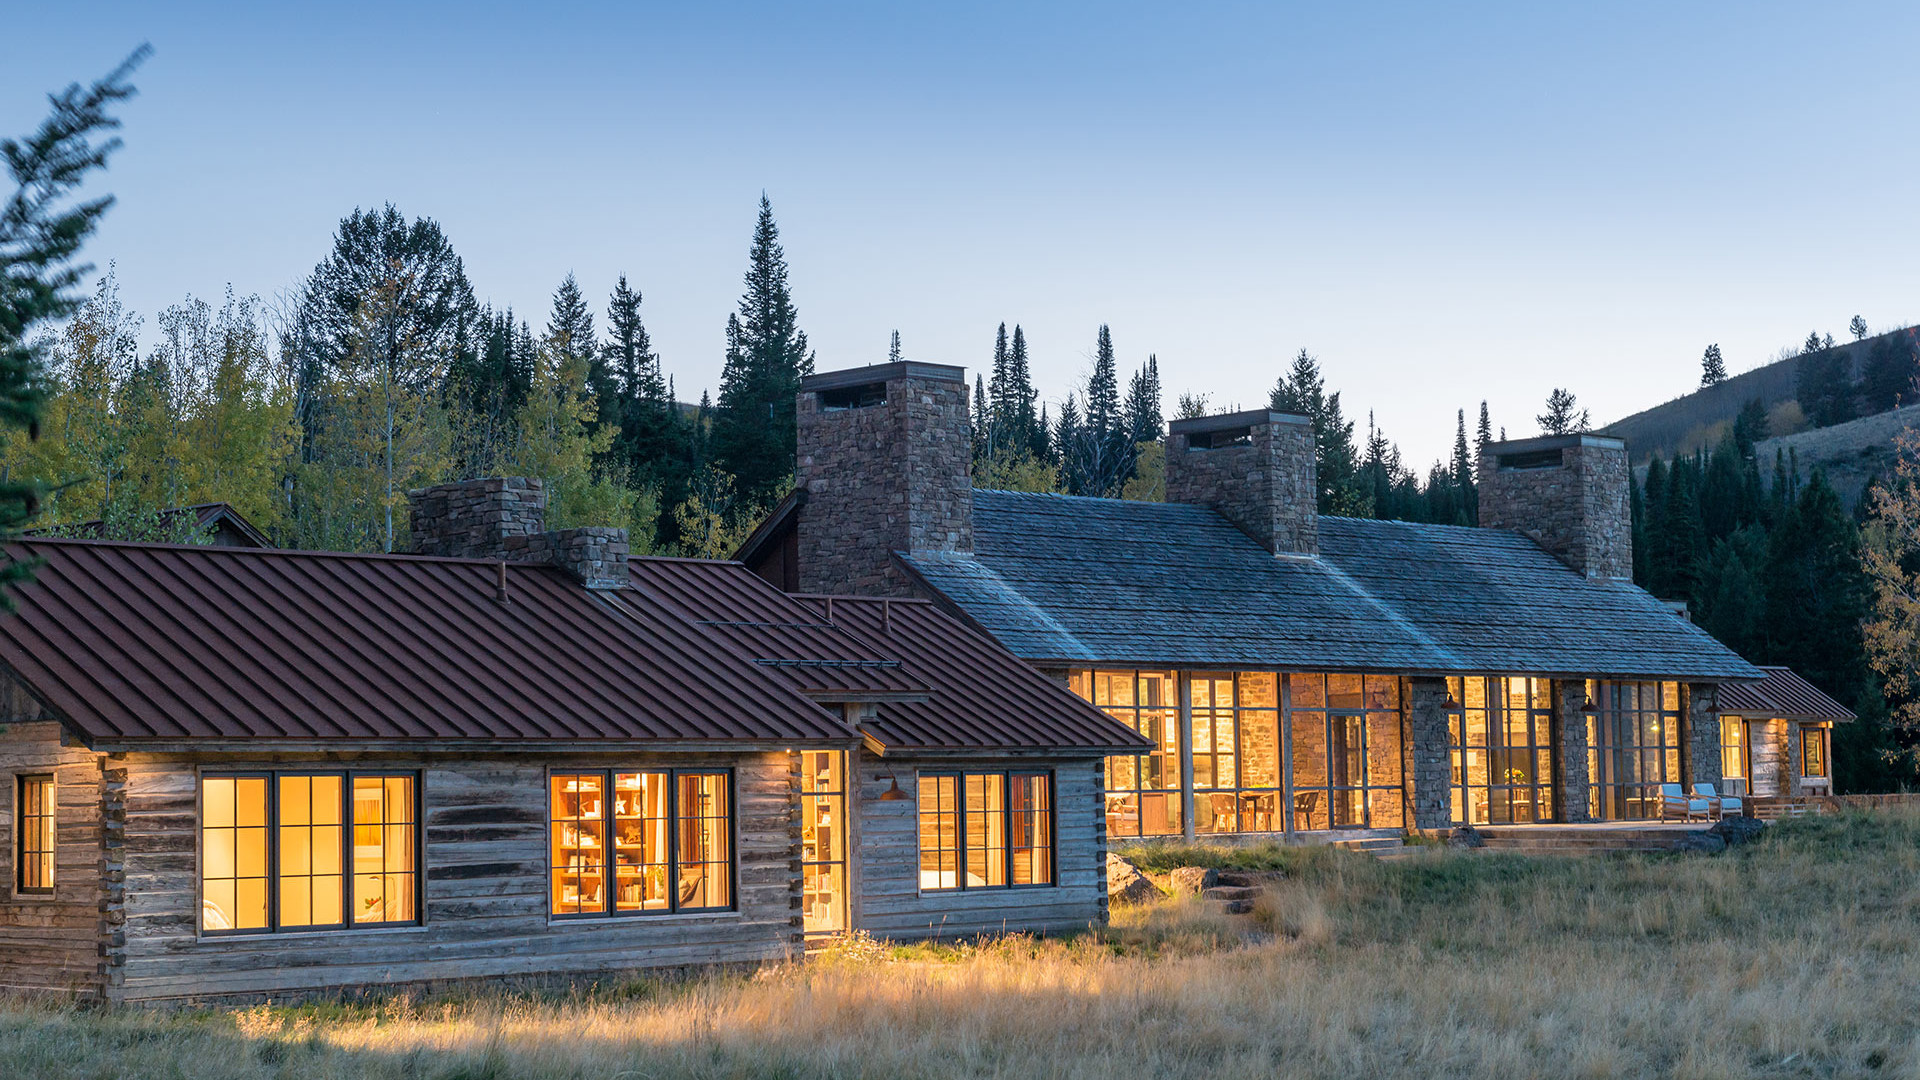 View of the Mountain House project equipped with thermal steel windows and doors in WYOMING